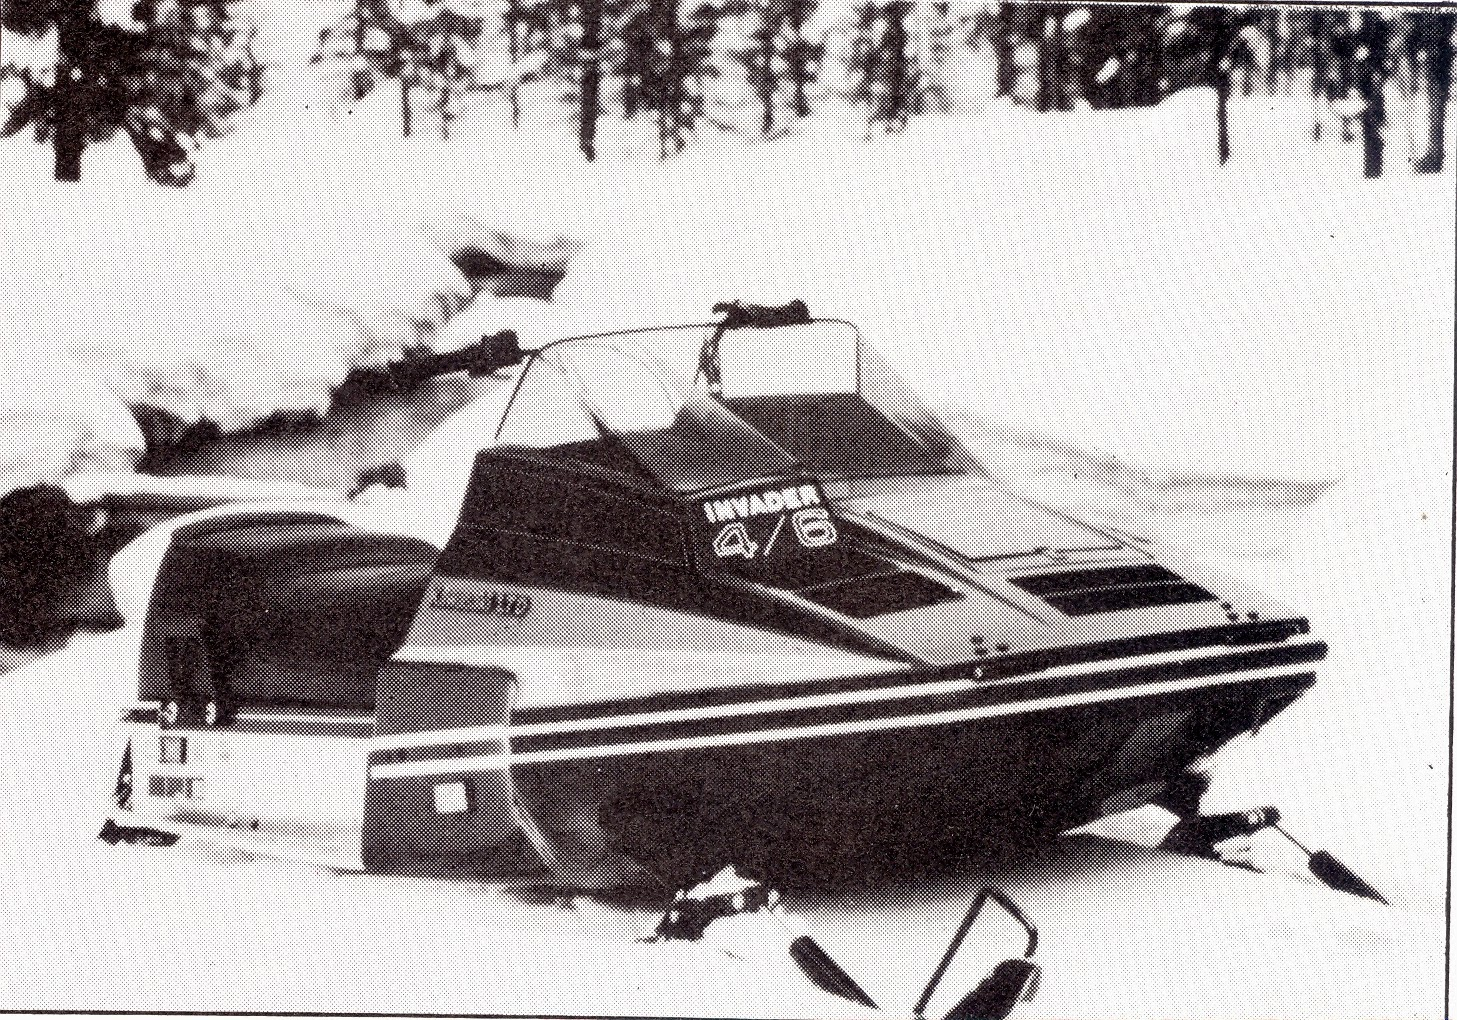 CLASSIC SNOWMOBILES OF THE PAST: 1980 KAWASAKI INVADER LTD 4/6